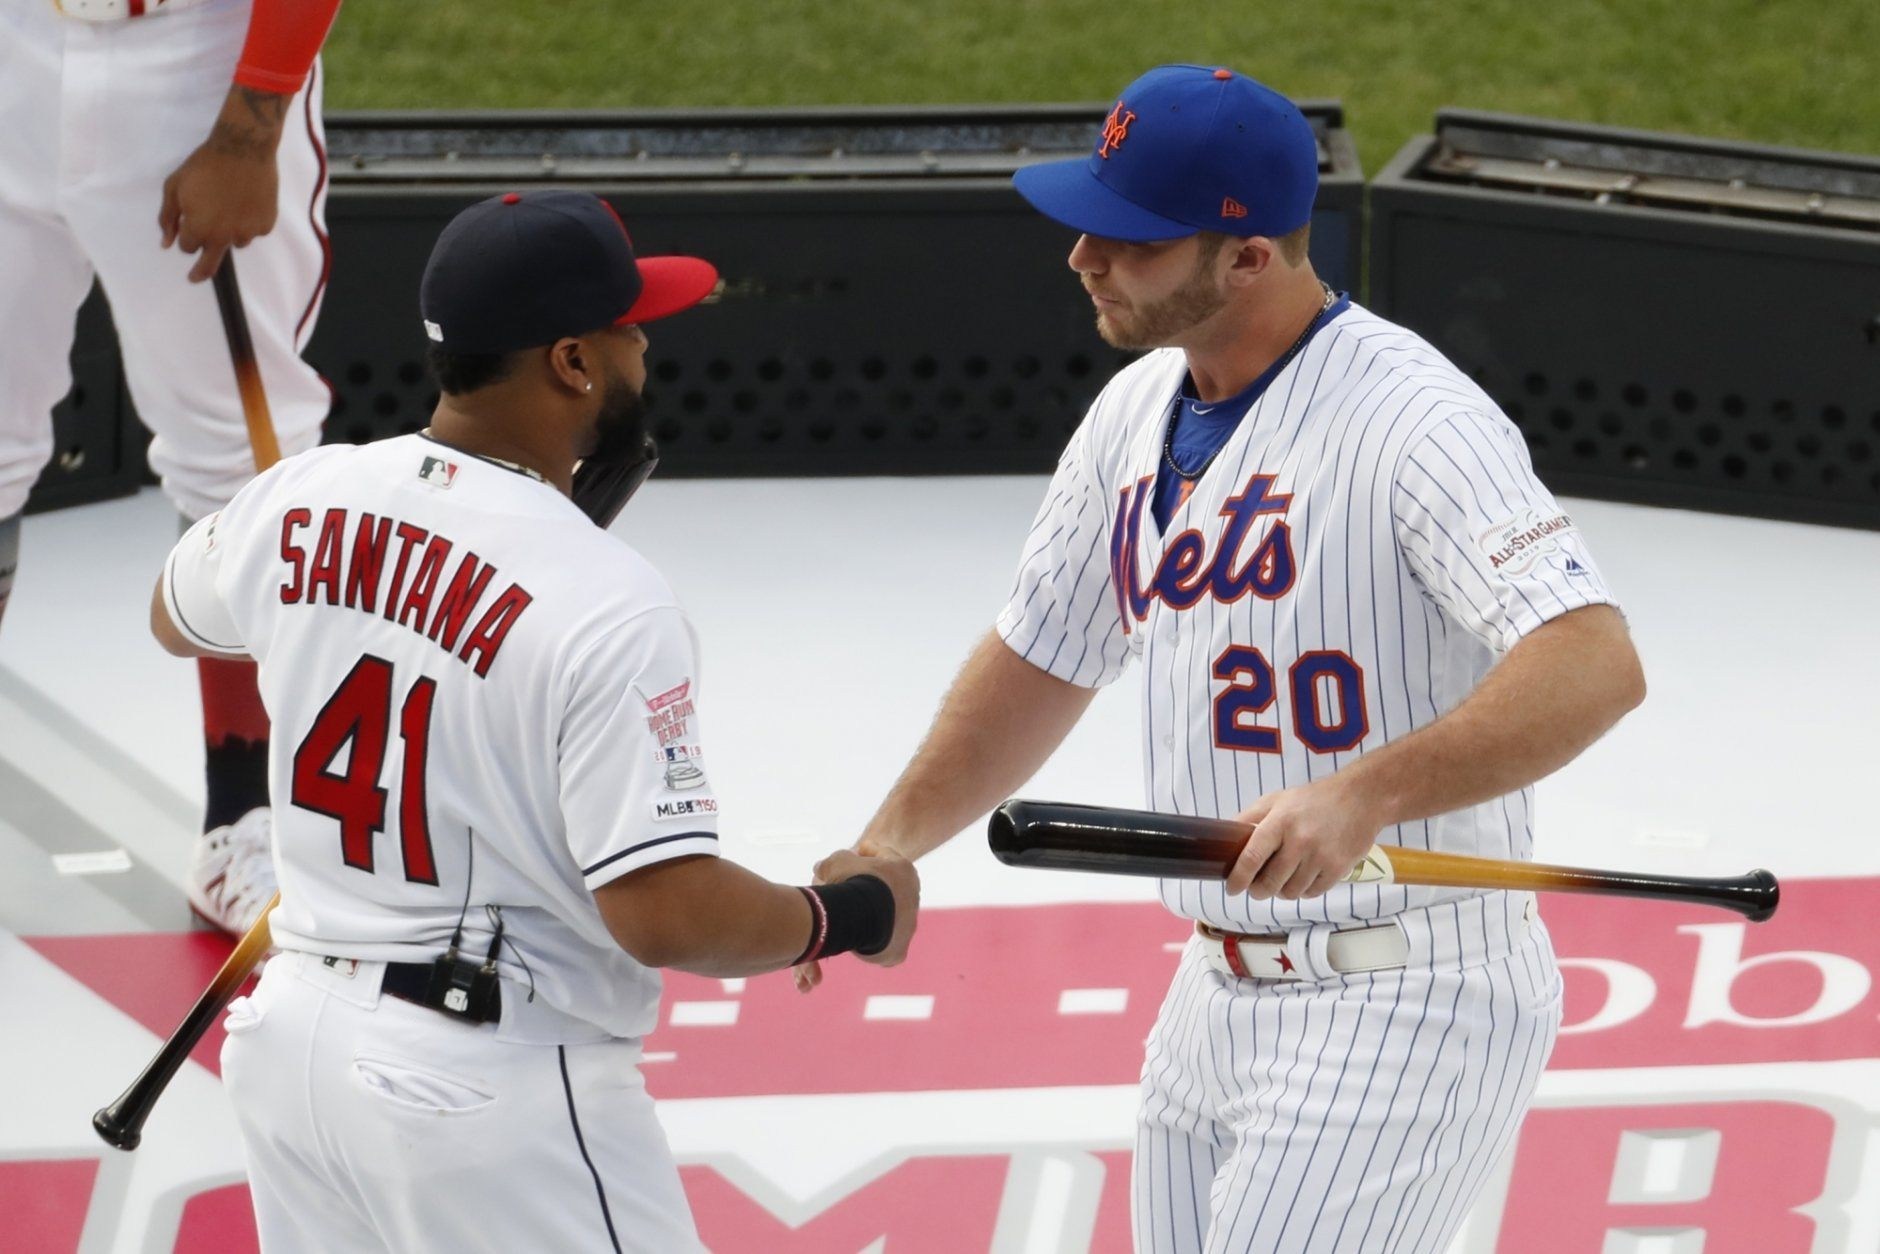 Carlos Santana, of the Cleveland Indians, and Pete Alonso, of the New York Mets, are introduced during the Major League Baseball Home Run Derby, Monday, July 8, 2019, in Cleveland. The MLB baseball All-Star Game will be played Tuesday. (AP Photo/Ron Schwane)